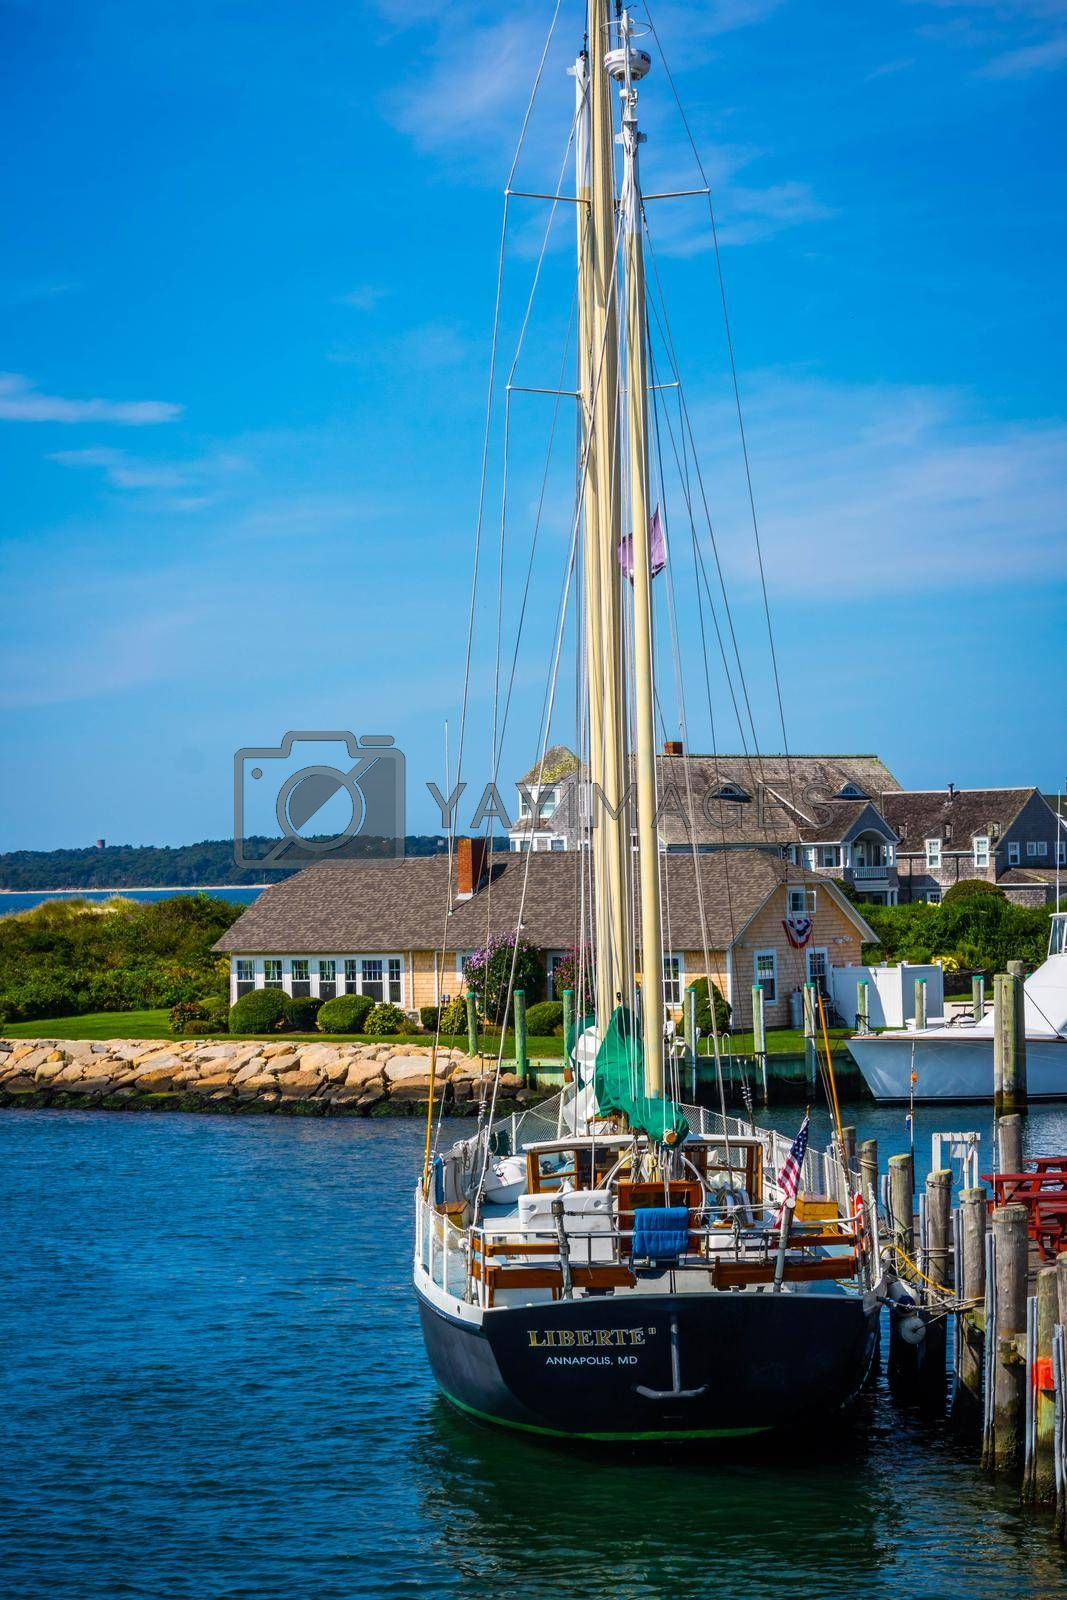 Royalty free image of Cape Cod Marthas Vineyard, MA, USA - Sept 4, 2018: The Liberte Annapolis sailing yacht boat cruising along the shore of Cape Cod by cherialguire